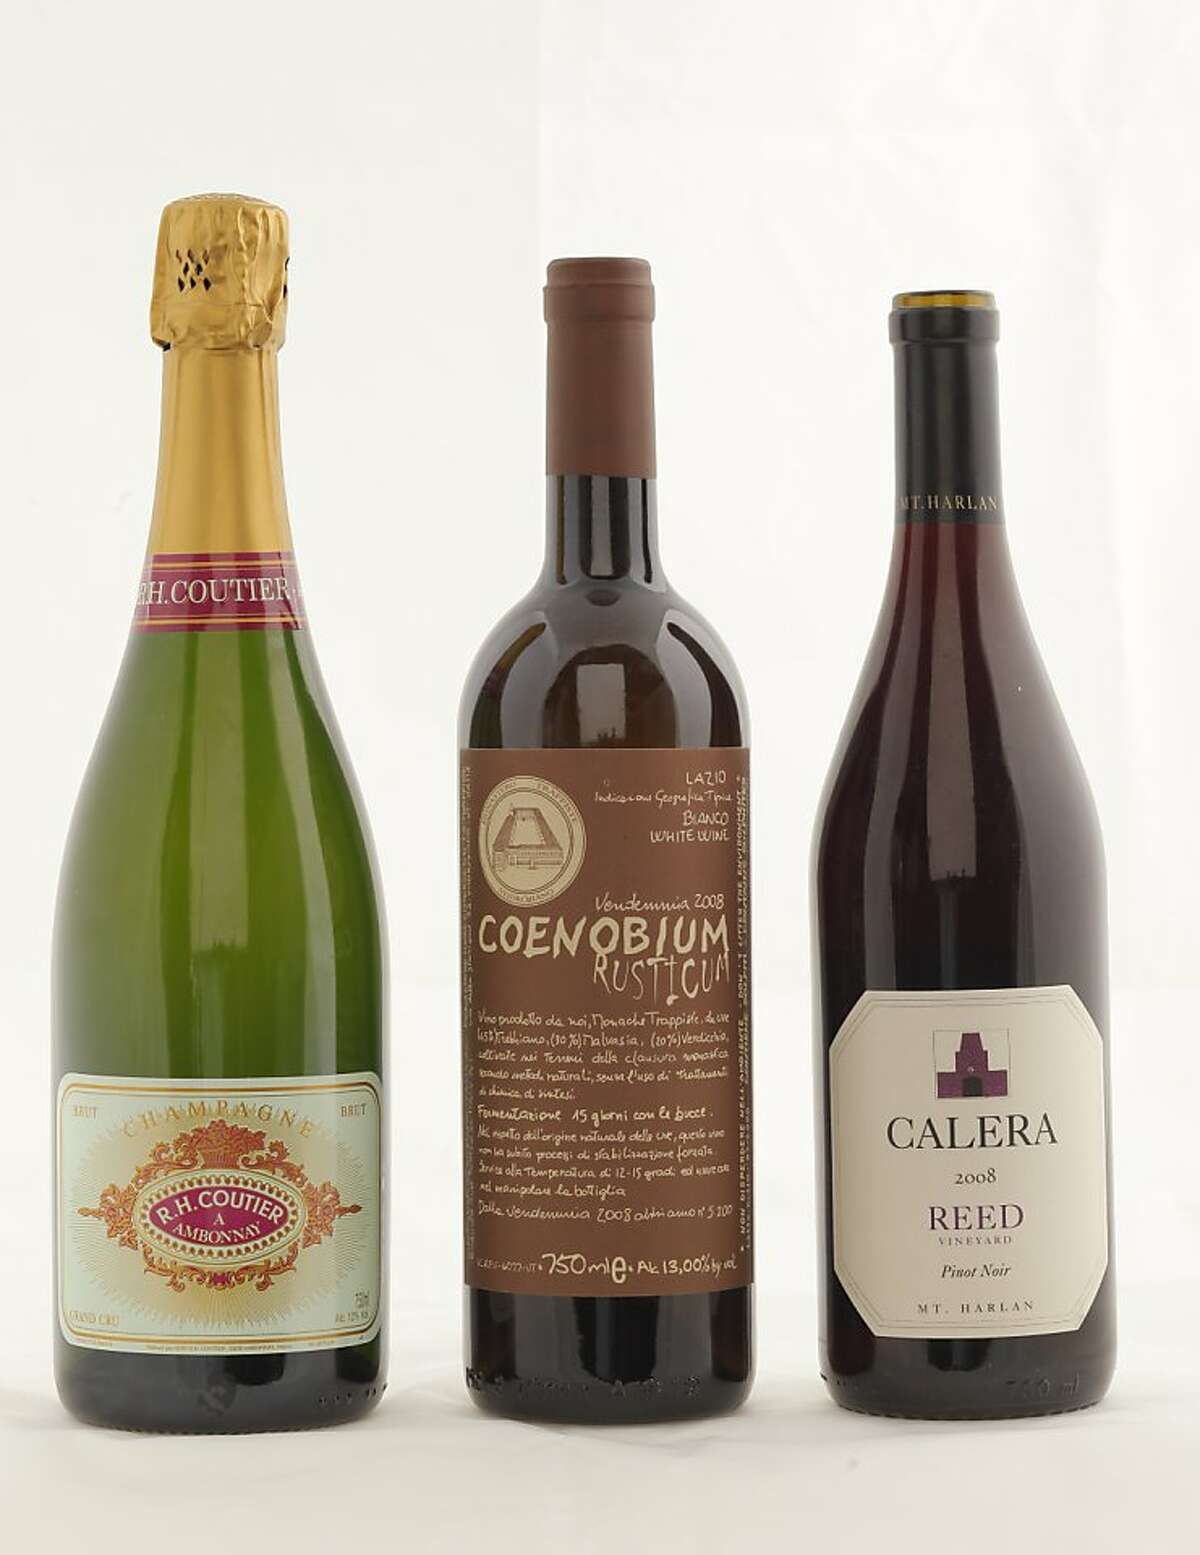 Left-right: NV R.H. Coutier Brut Tradition Grand Cru Champagne ($41, 12%, Beaune Imports) 2008 Monastere Suore Cisterncensi Coenobium Rusticum ($28, TK, Rosenthal Wine Merchant) 2008 Calera Reed Vineyard Mt. Harlan Pinot Noir ($50, 14.9%) as seen in San Francisco, California, on November 9, 2011.